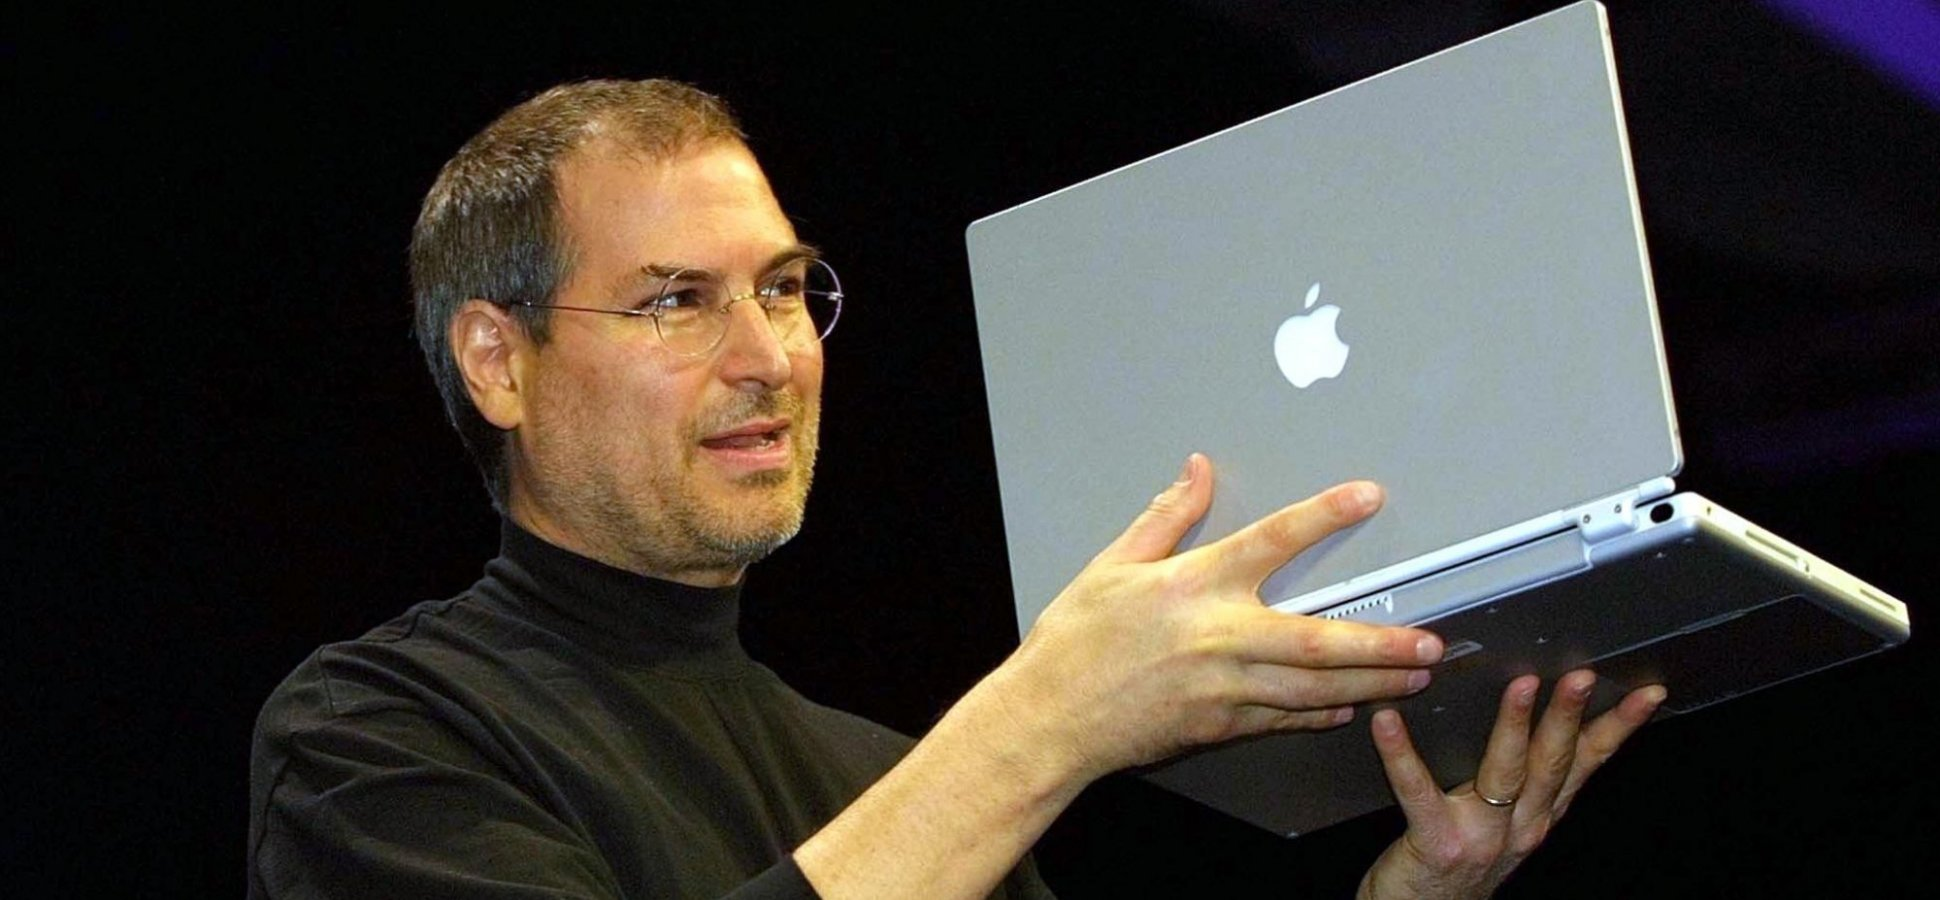 Steve Jobs Said 1 Powerful Habit Separates Successful People From Everyone Else (and Will Drastically Change Your Life)